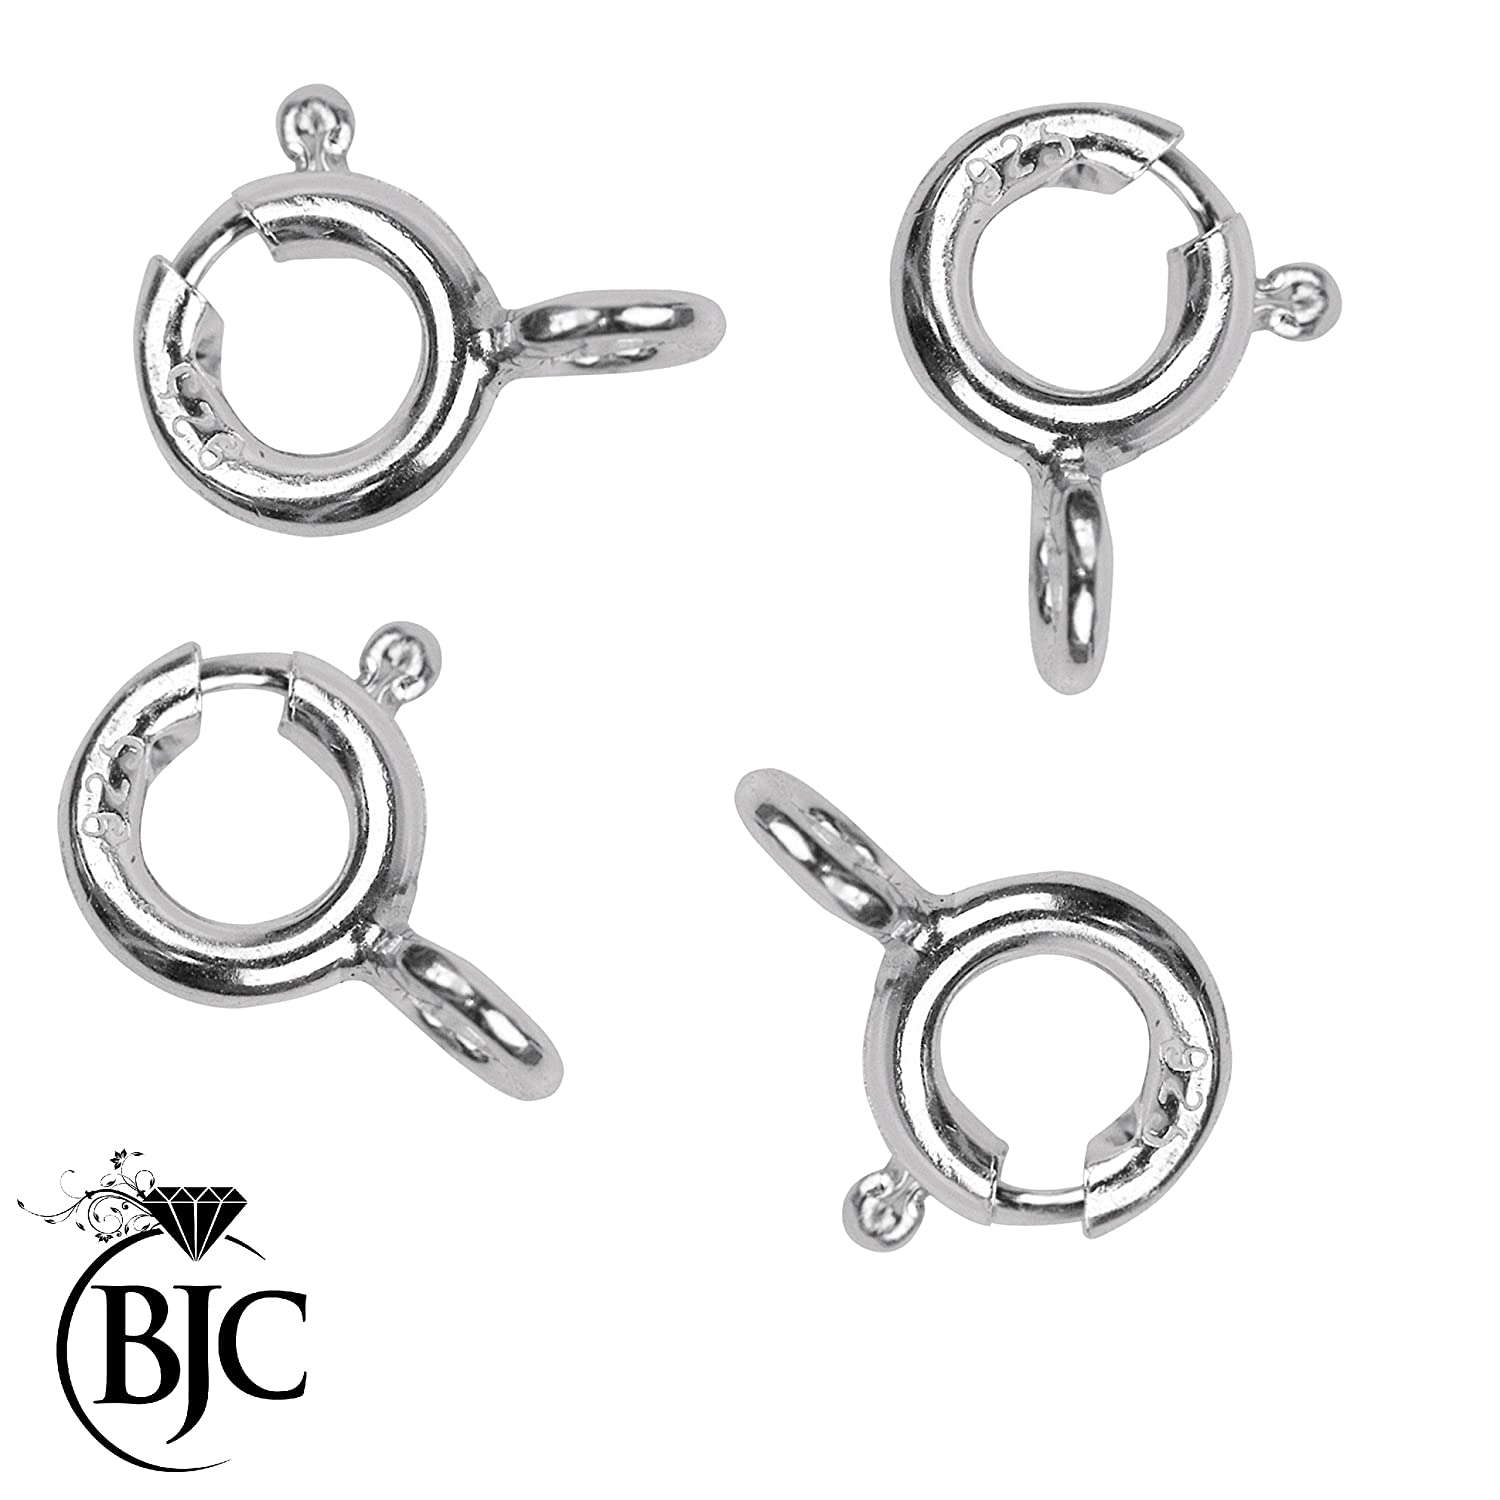 10 x 6mm Solid Sterling Silver Bolt Ring Clasps with open jump ring for Jewellery Making